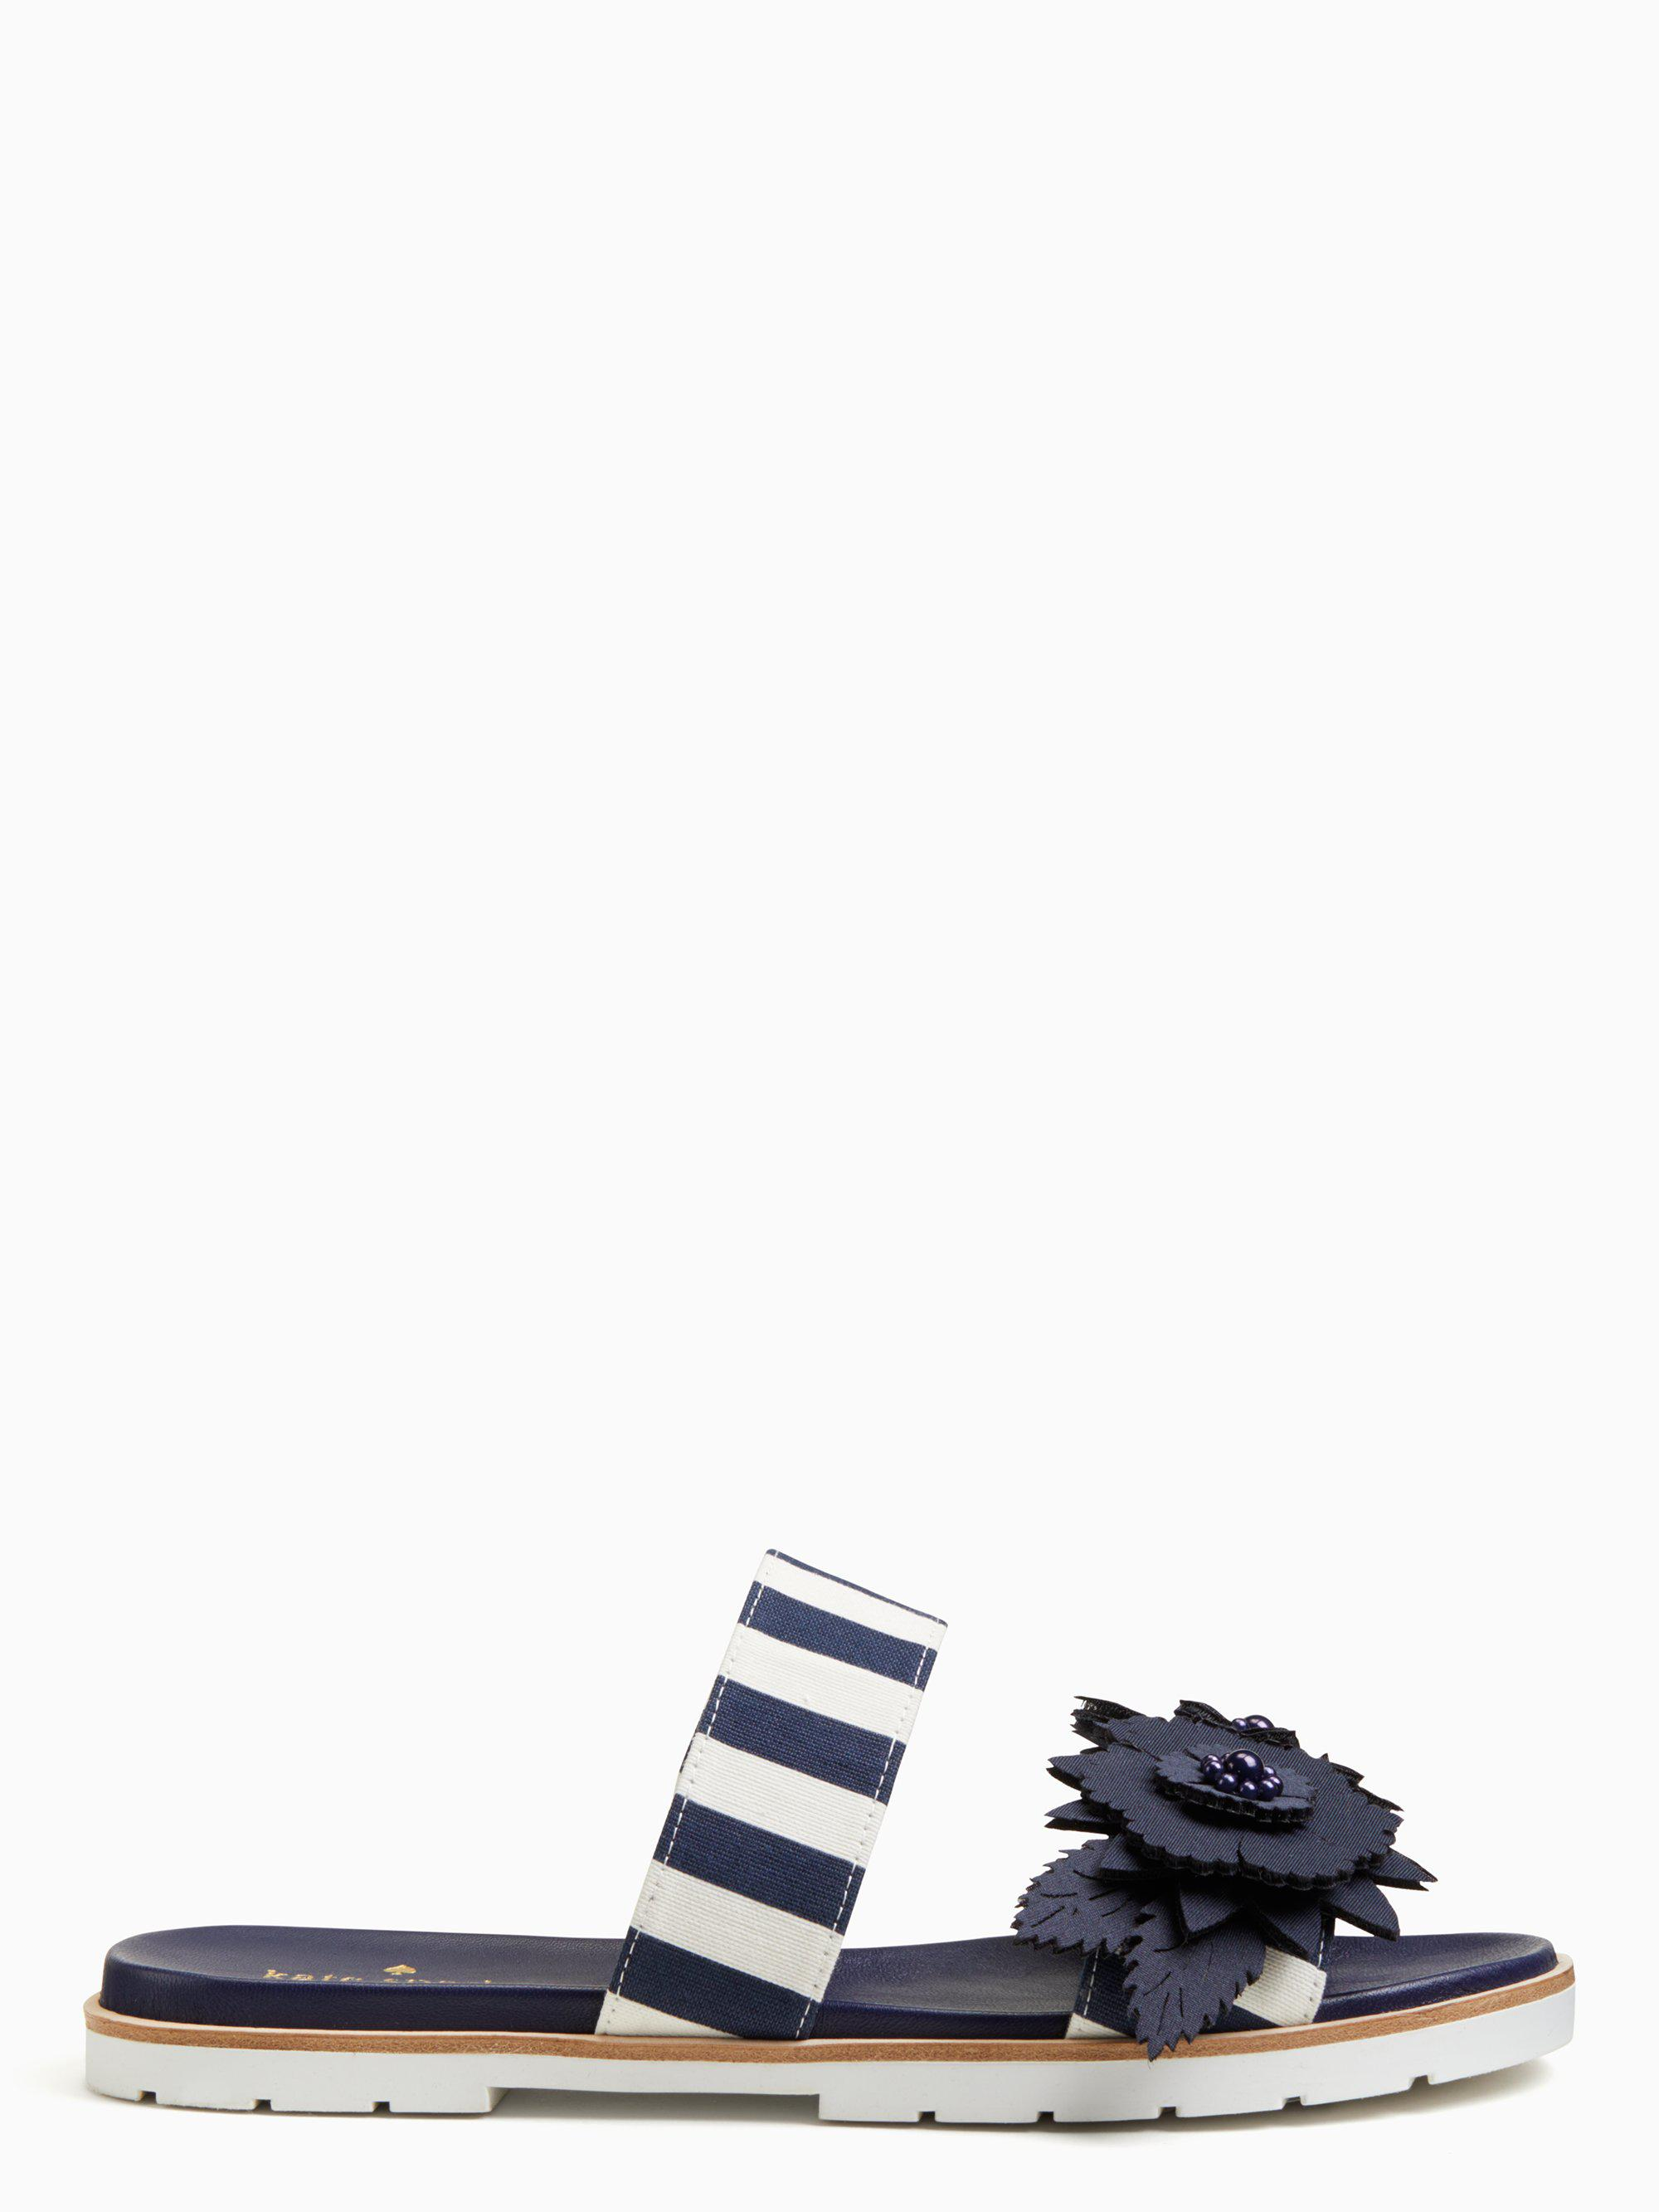 484c1788dfc6 Lyst - Kate Spade Marley Sandals in Blue